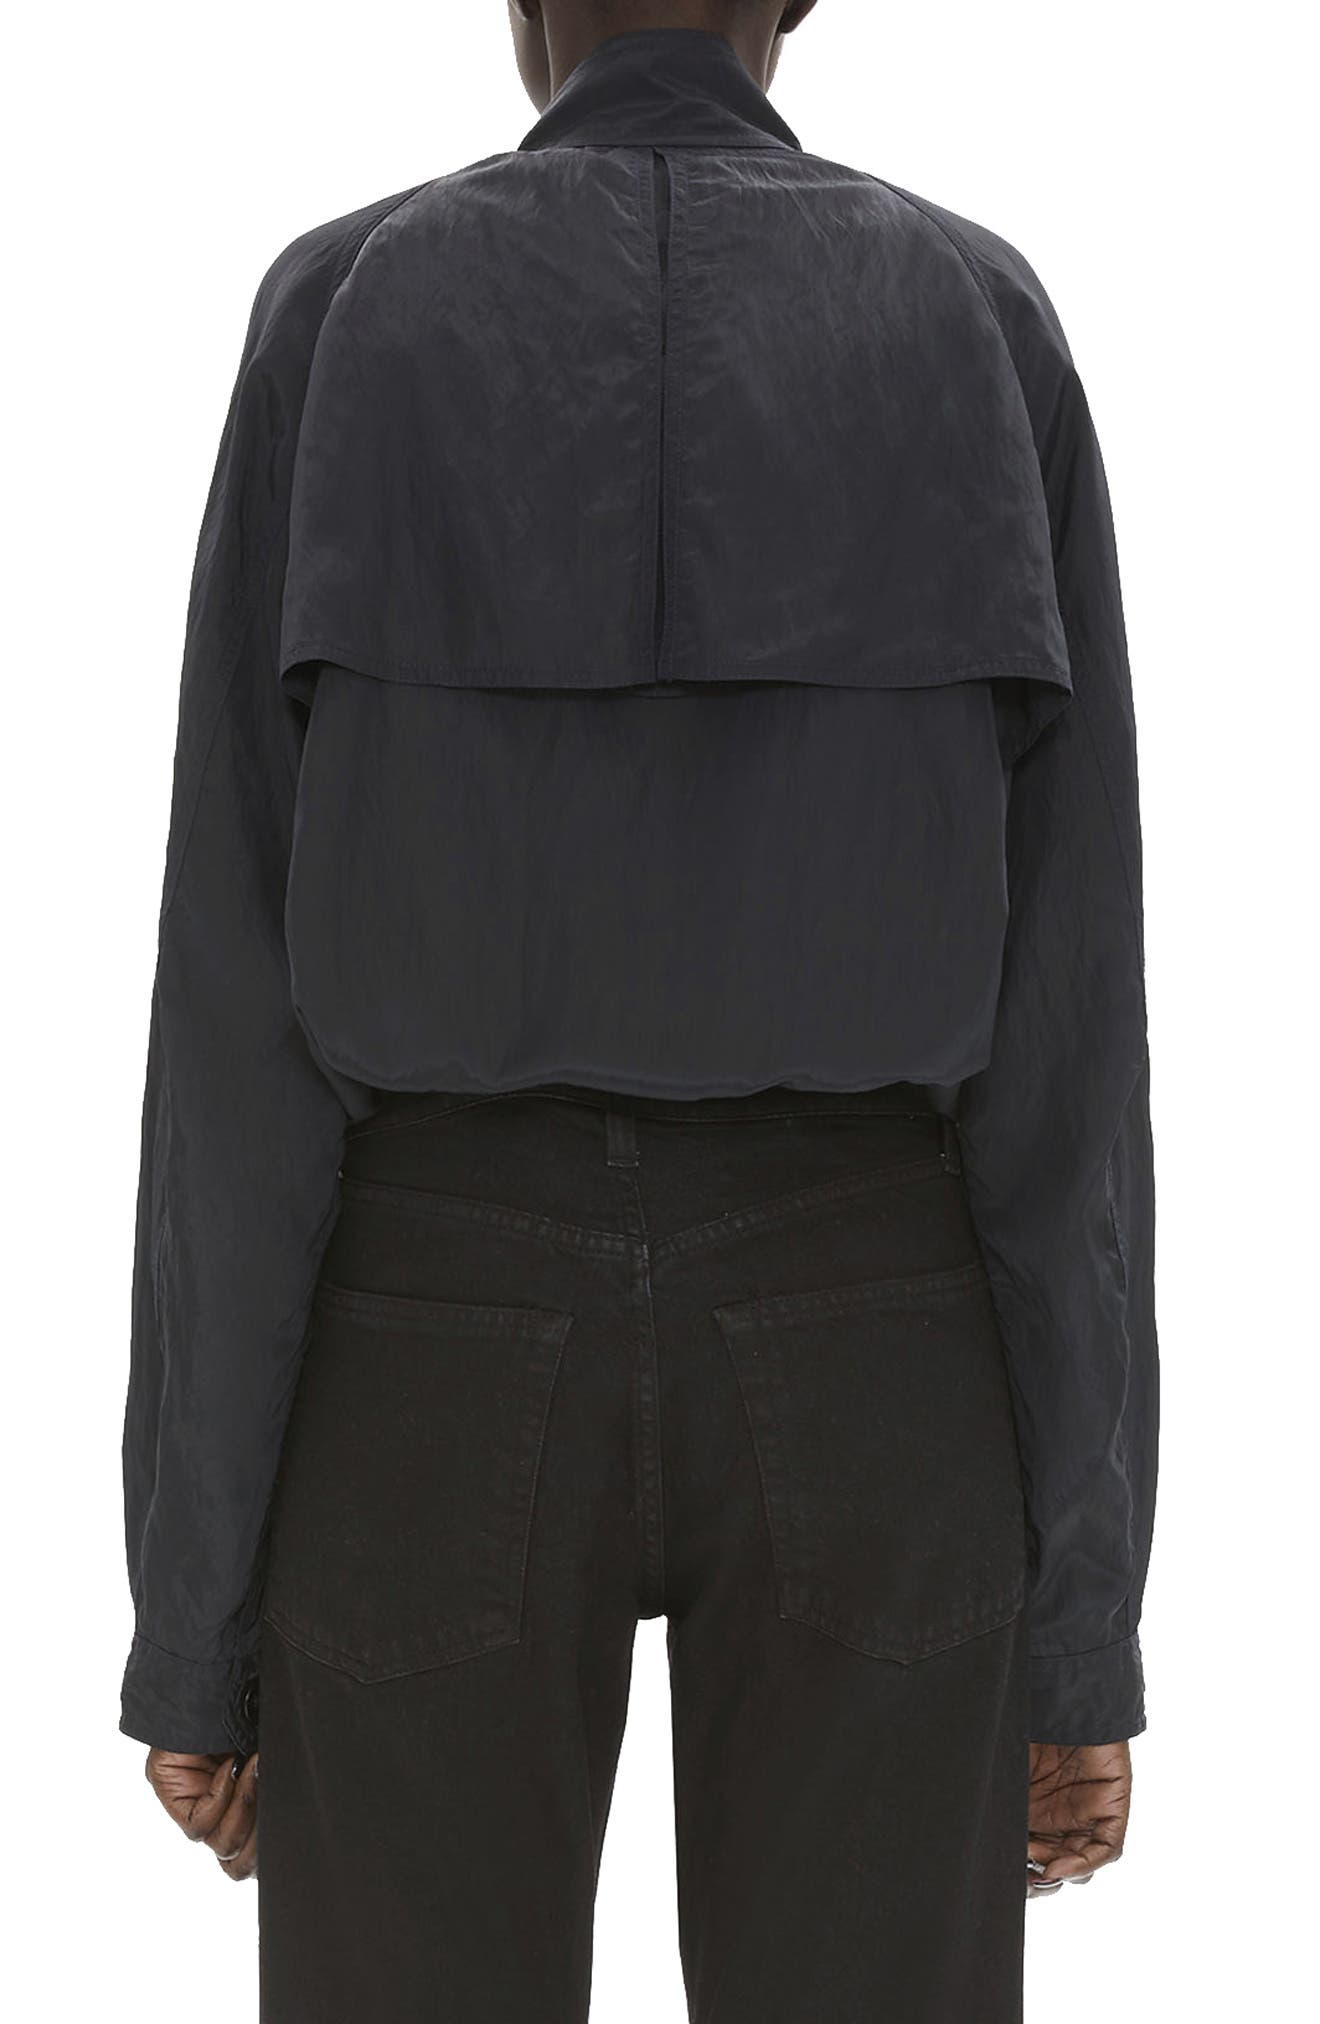 HELMUT LANG, Parachute Short Trench Jacket, Alternate thumbnail 2, color, BLACK